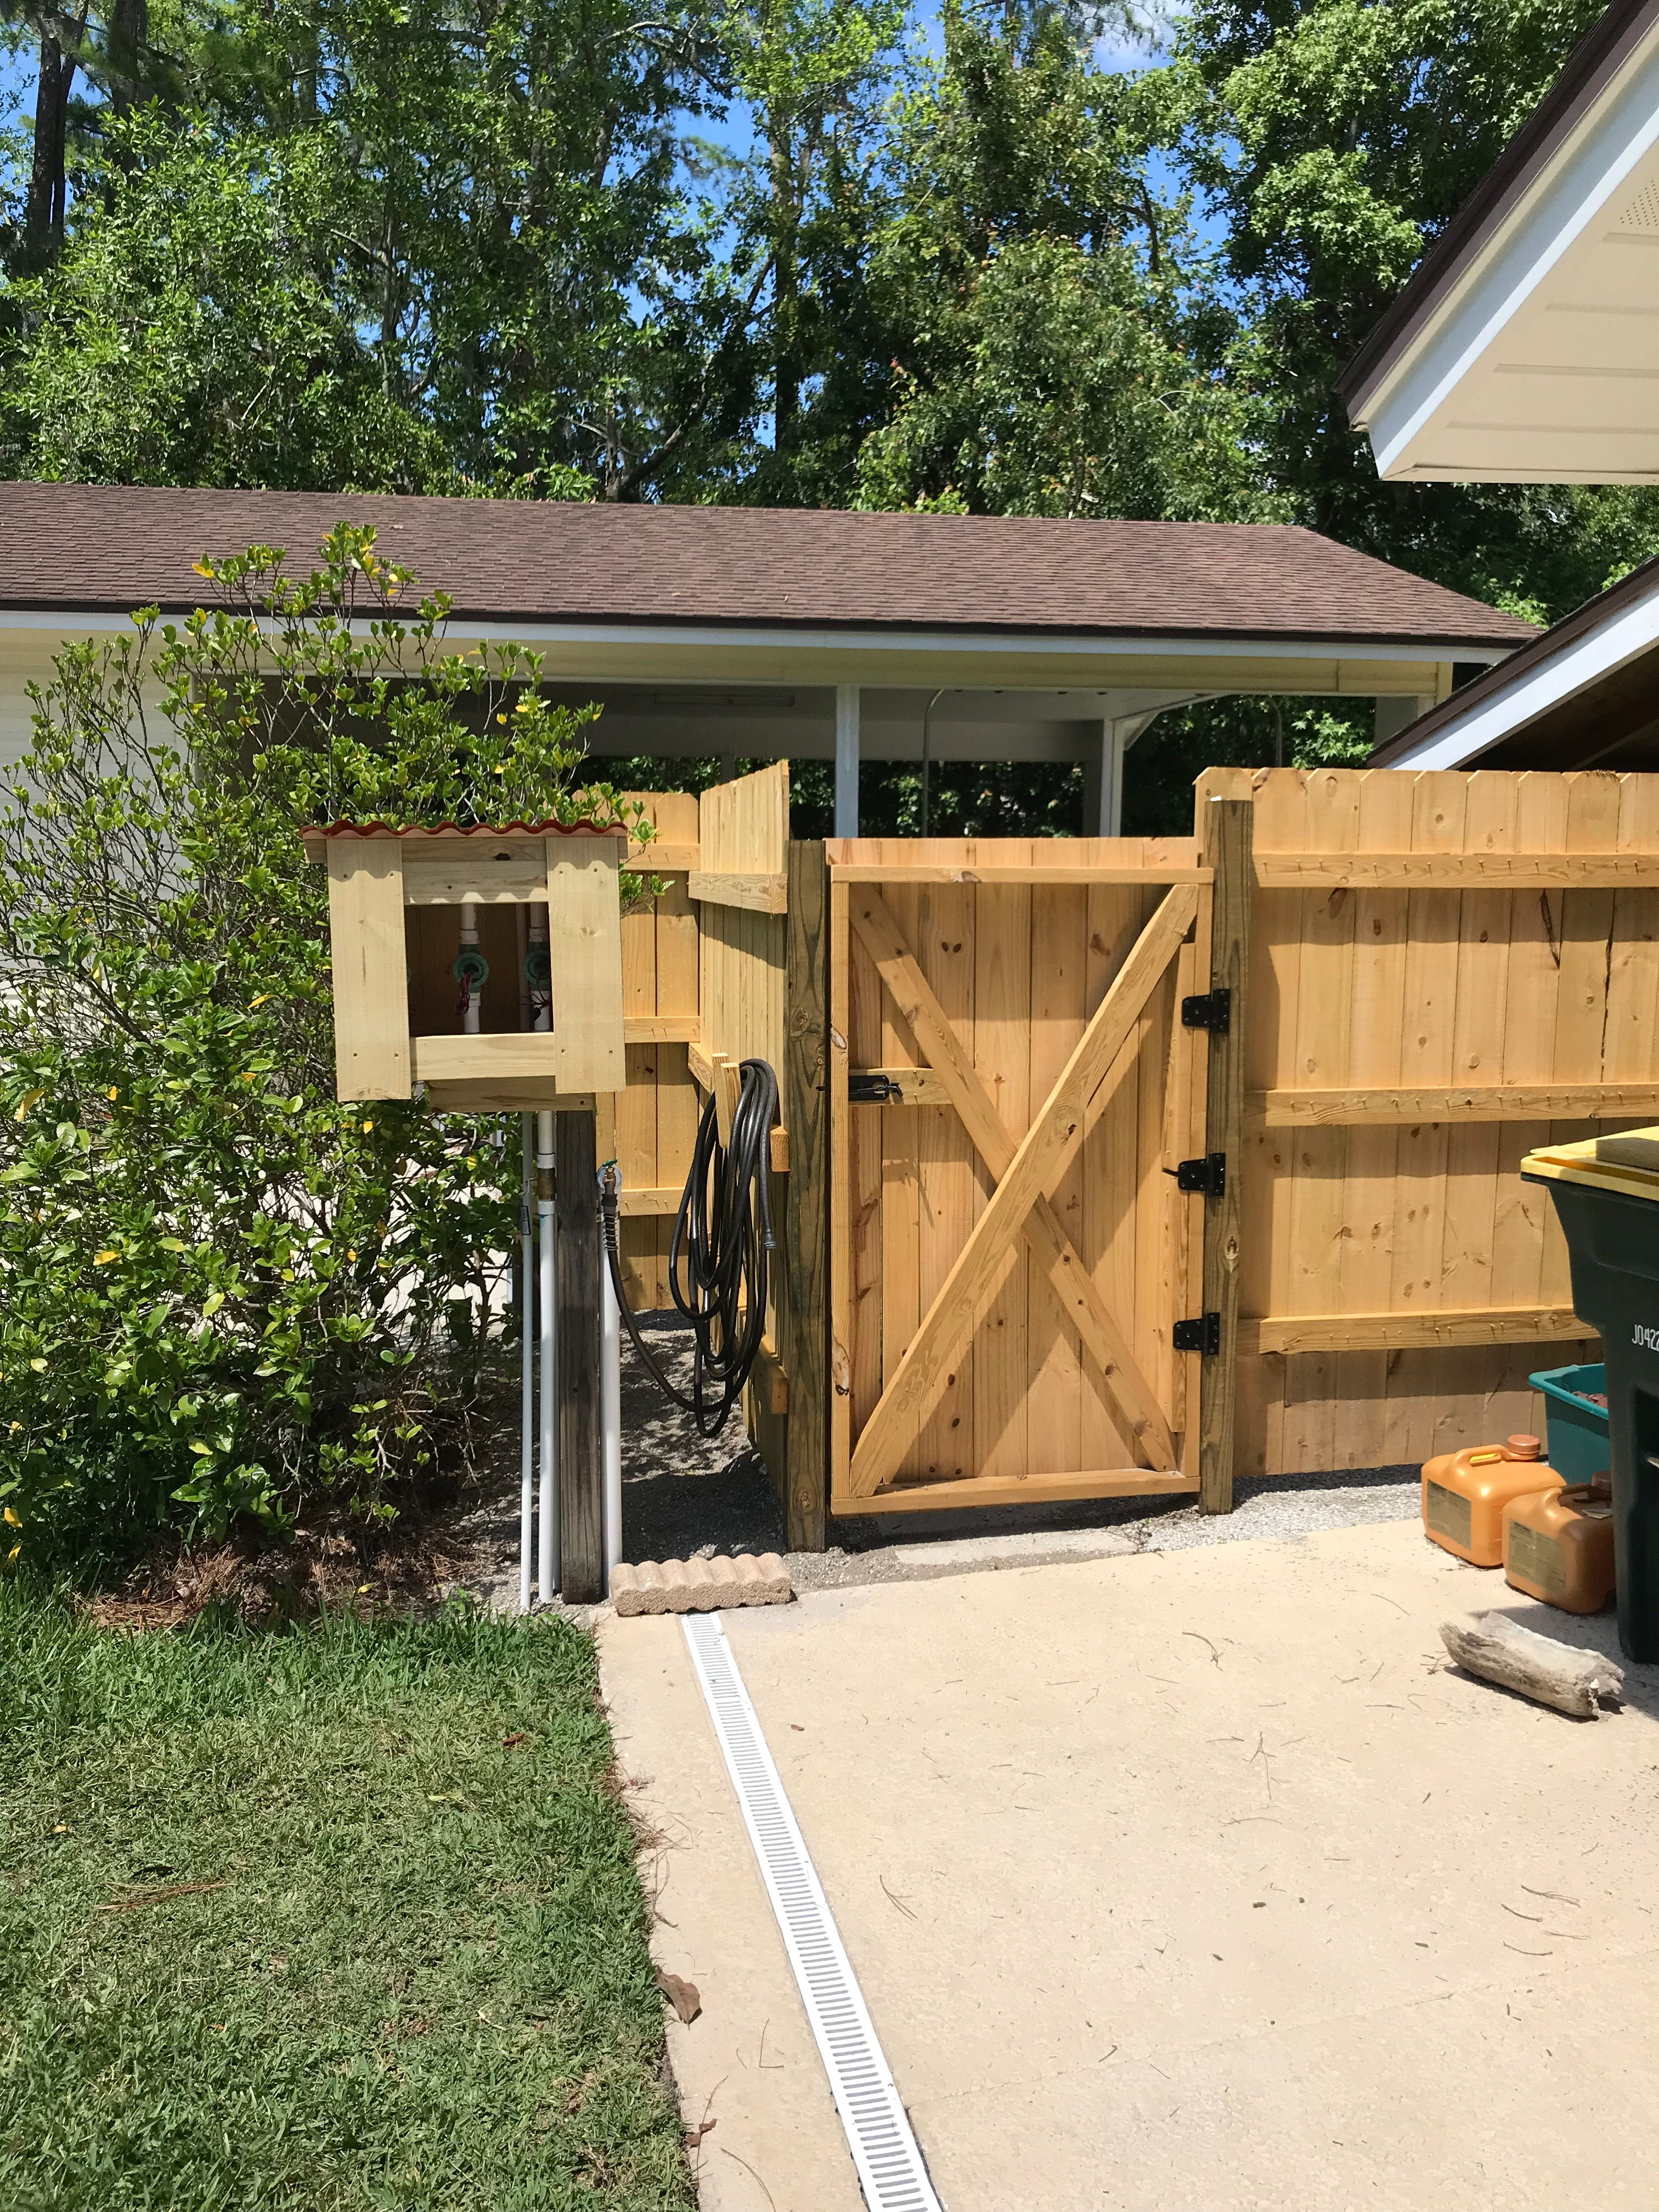 Build a Wooden Fence and Gate